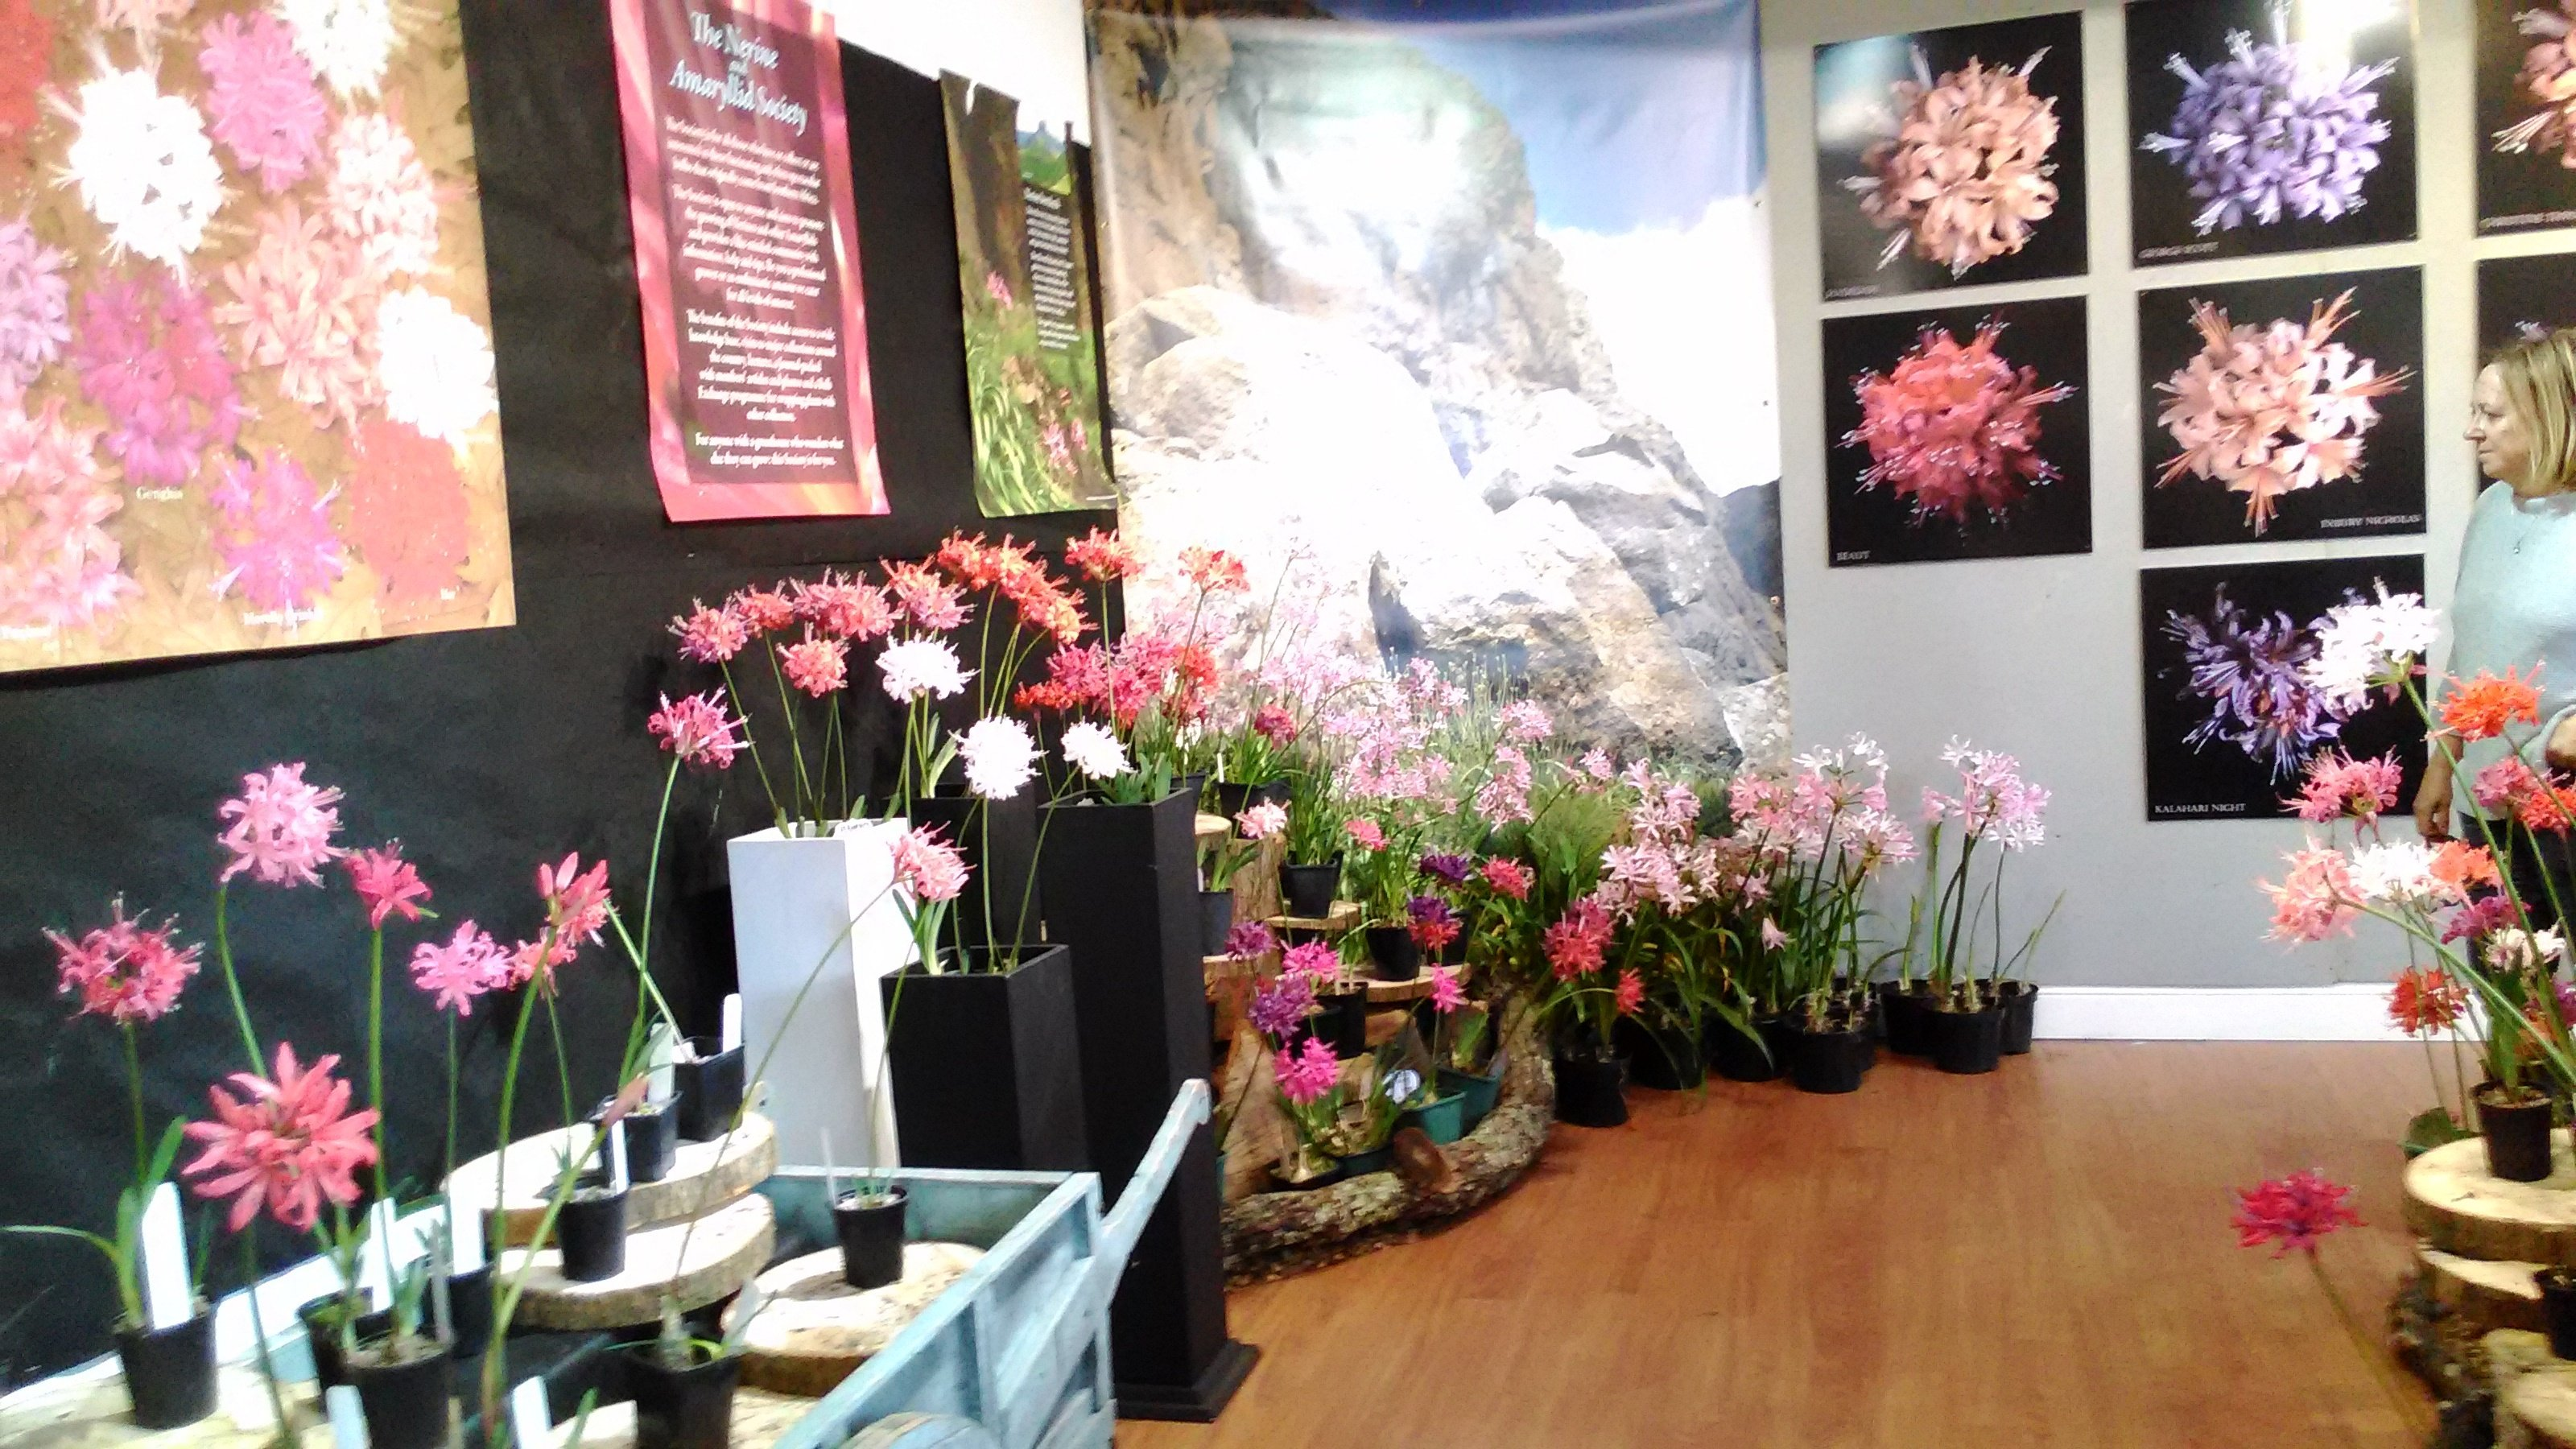 N. sarniensis and hardy nerines displayed in front of posters  and superb photos.